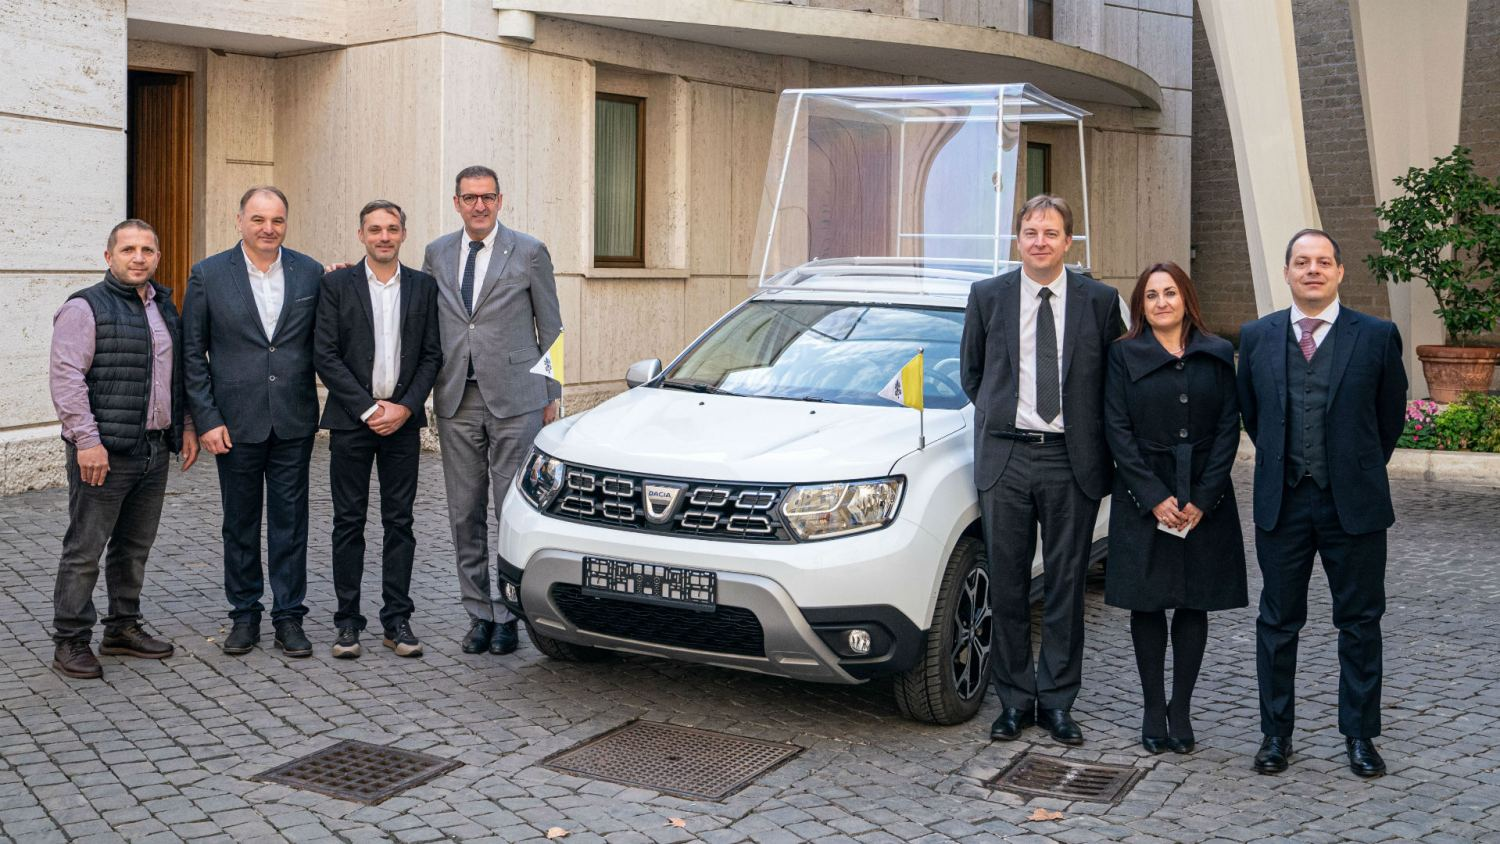 Dacia Duster 4x4 for the Pope